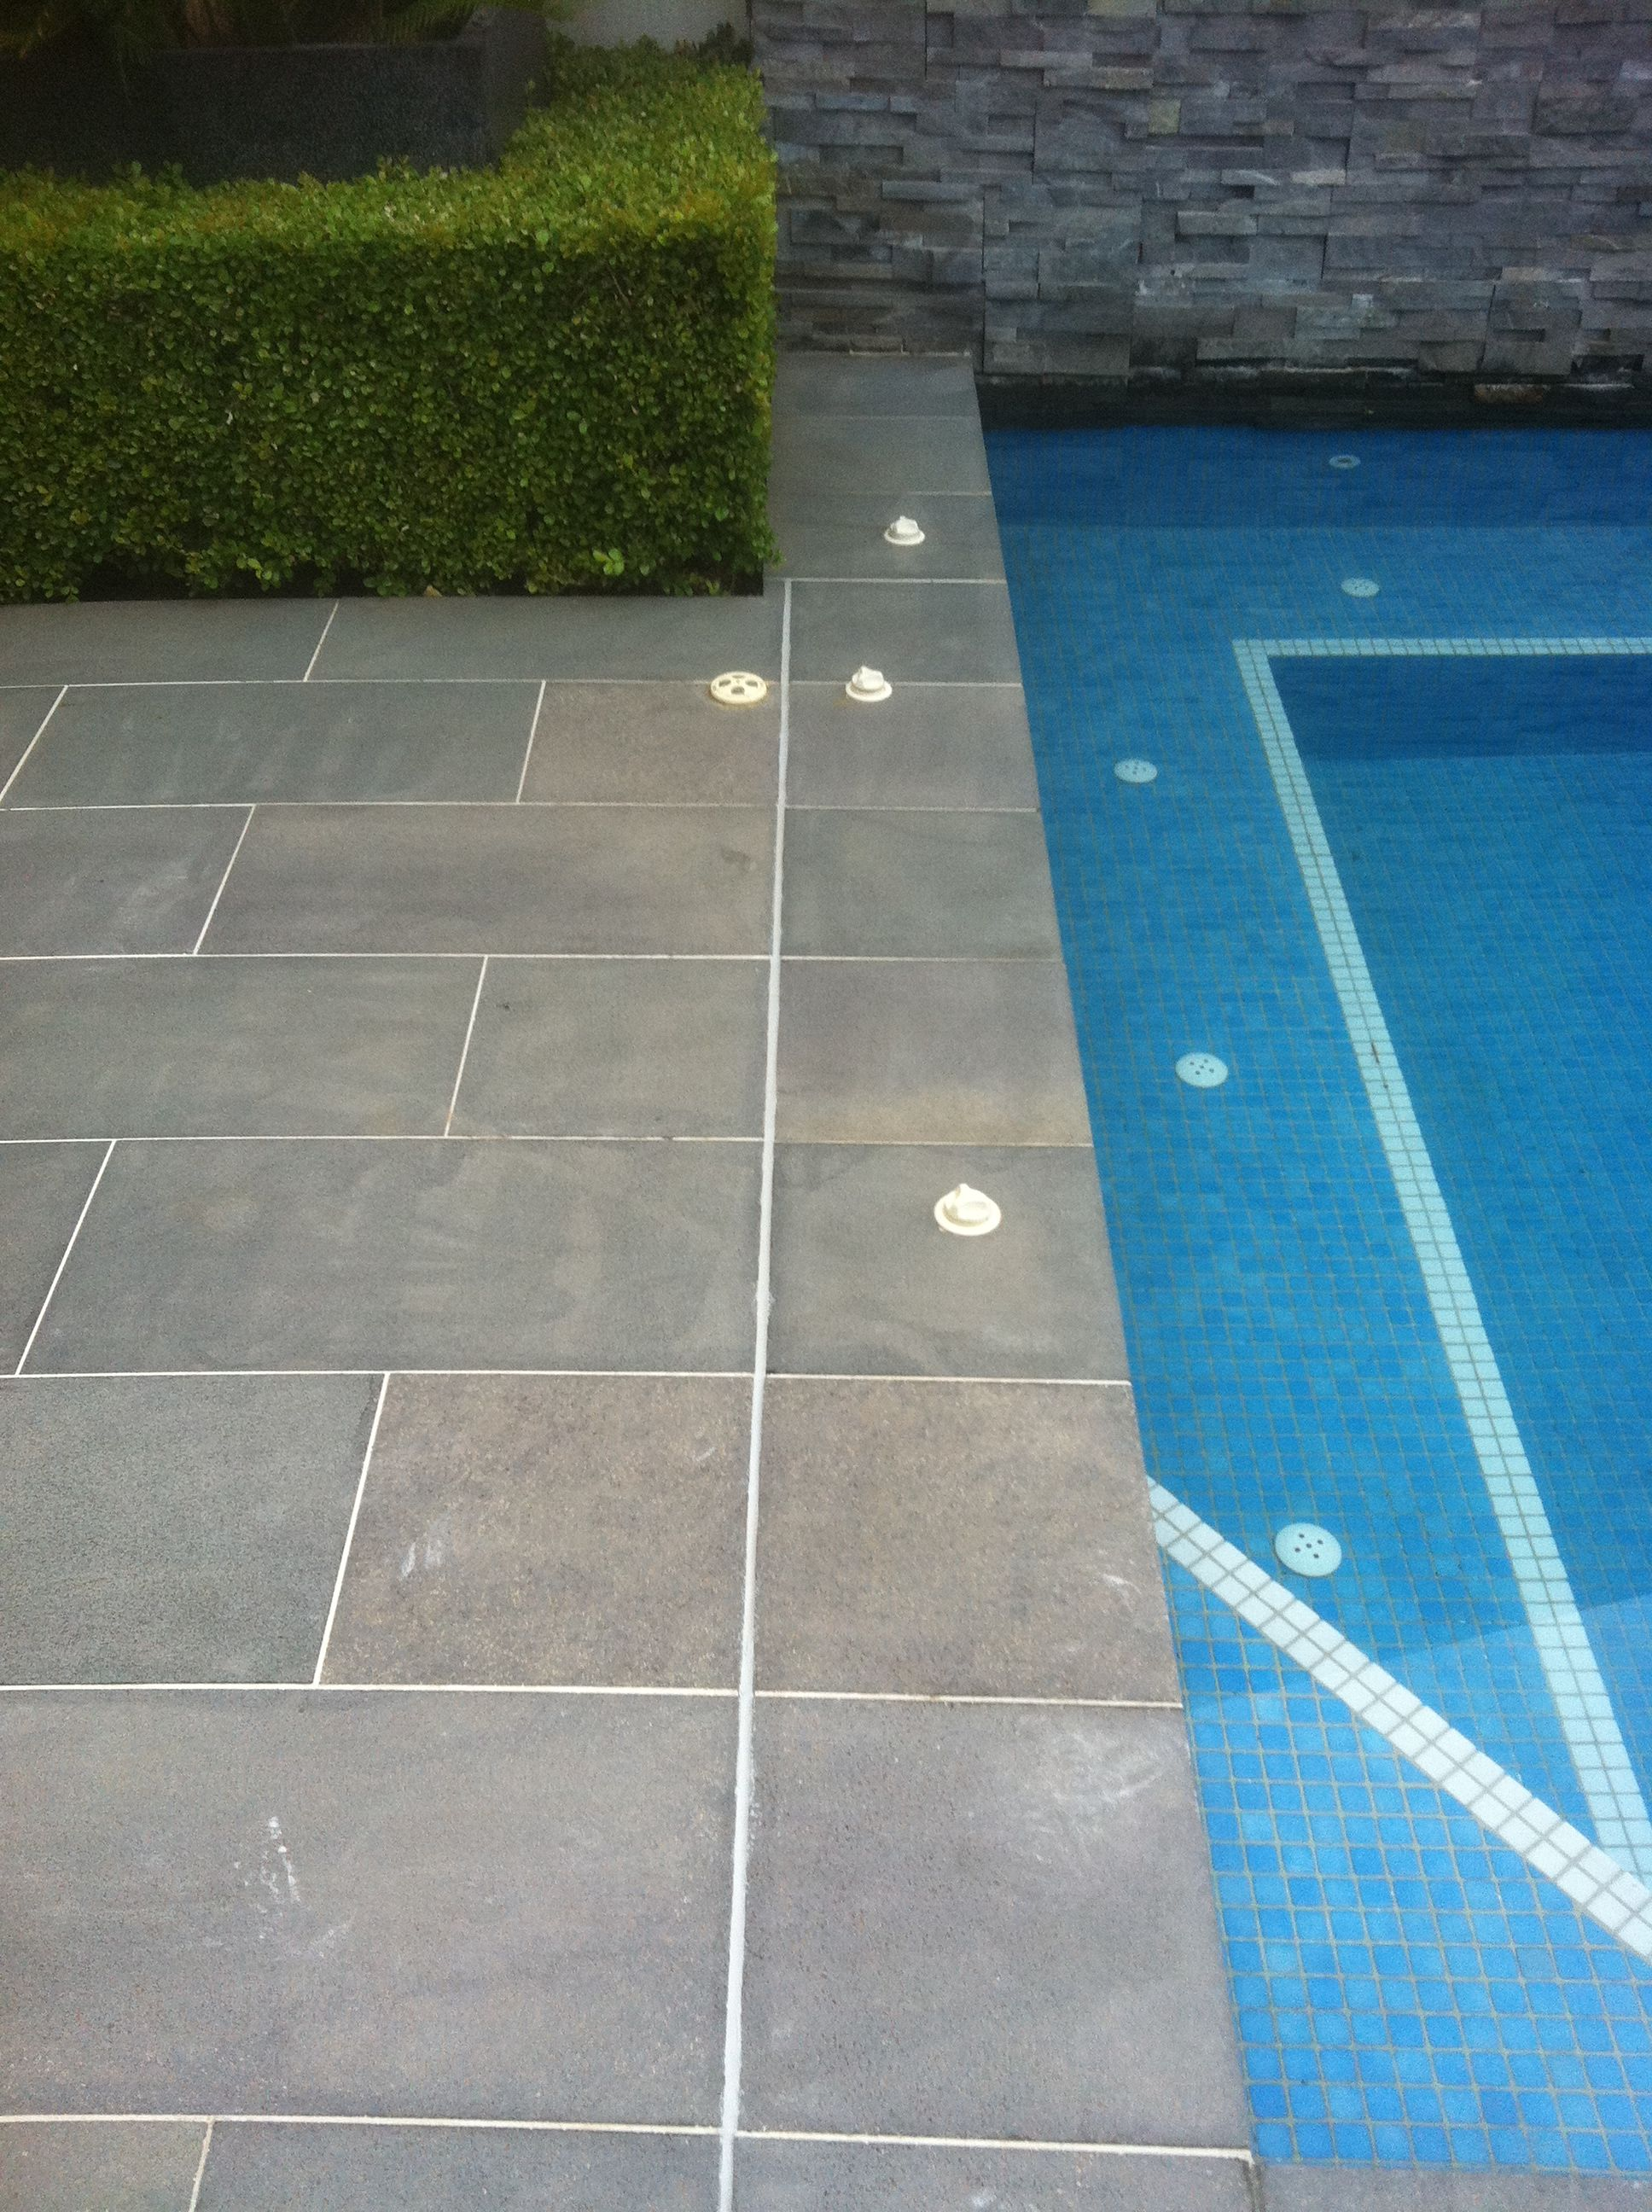 Pin By 2 Favor Bags On Natural Stone Pavers Water Feature And Paving Repair Diy Swimming Pool Swimming Pool Tiles Swimming Pool Designs